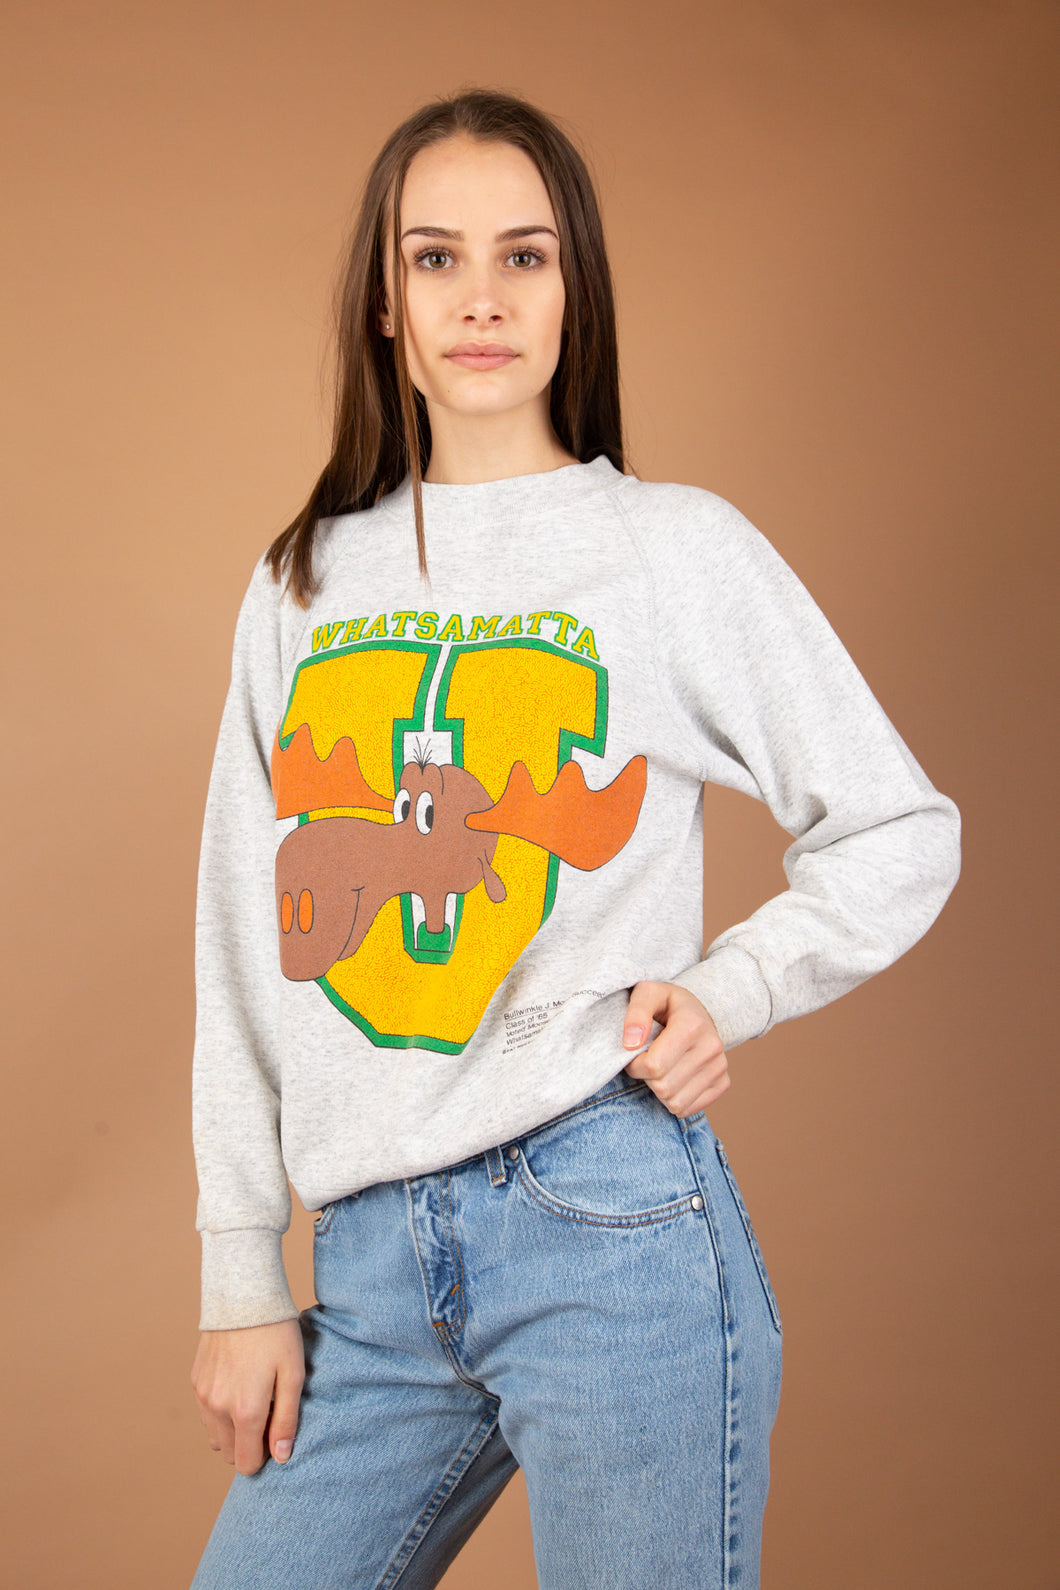 Grey in colour, this vintage sweater has a giant yellow and green 'U' print on the front with Bullwinkle J Moose from 'Rocky and his friends.' Whatsamatta printed above with small writing detail on bottom left of jumper.